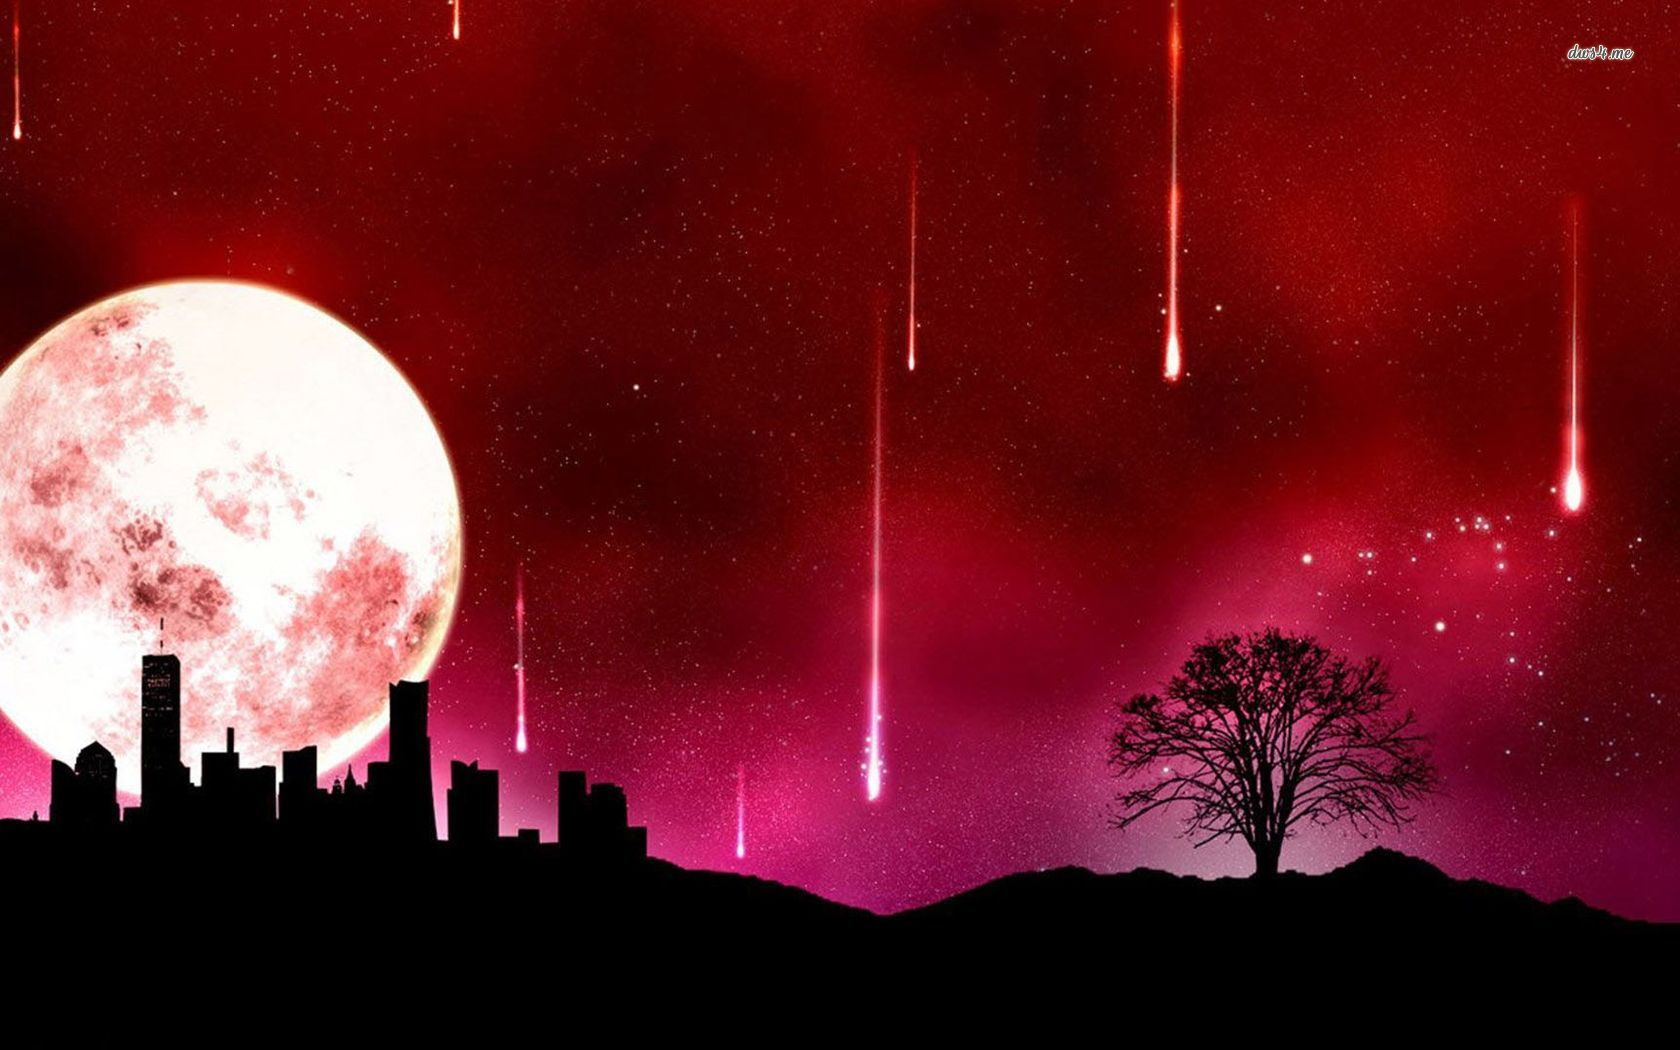 Red Month Fantasy Meteor Shower - Red Month Fantasy Meteor Shower